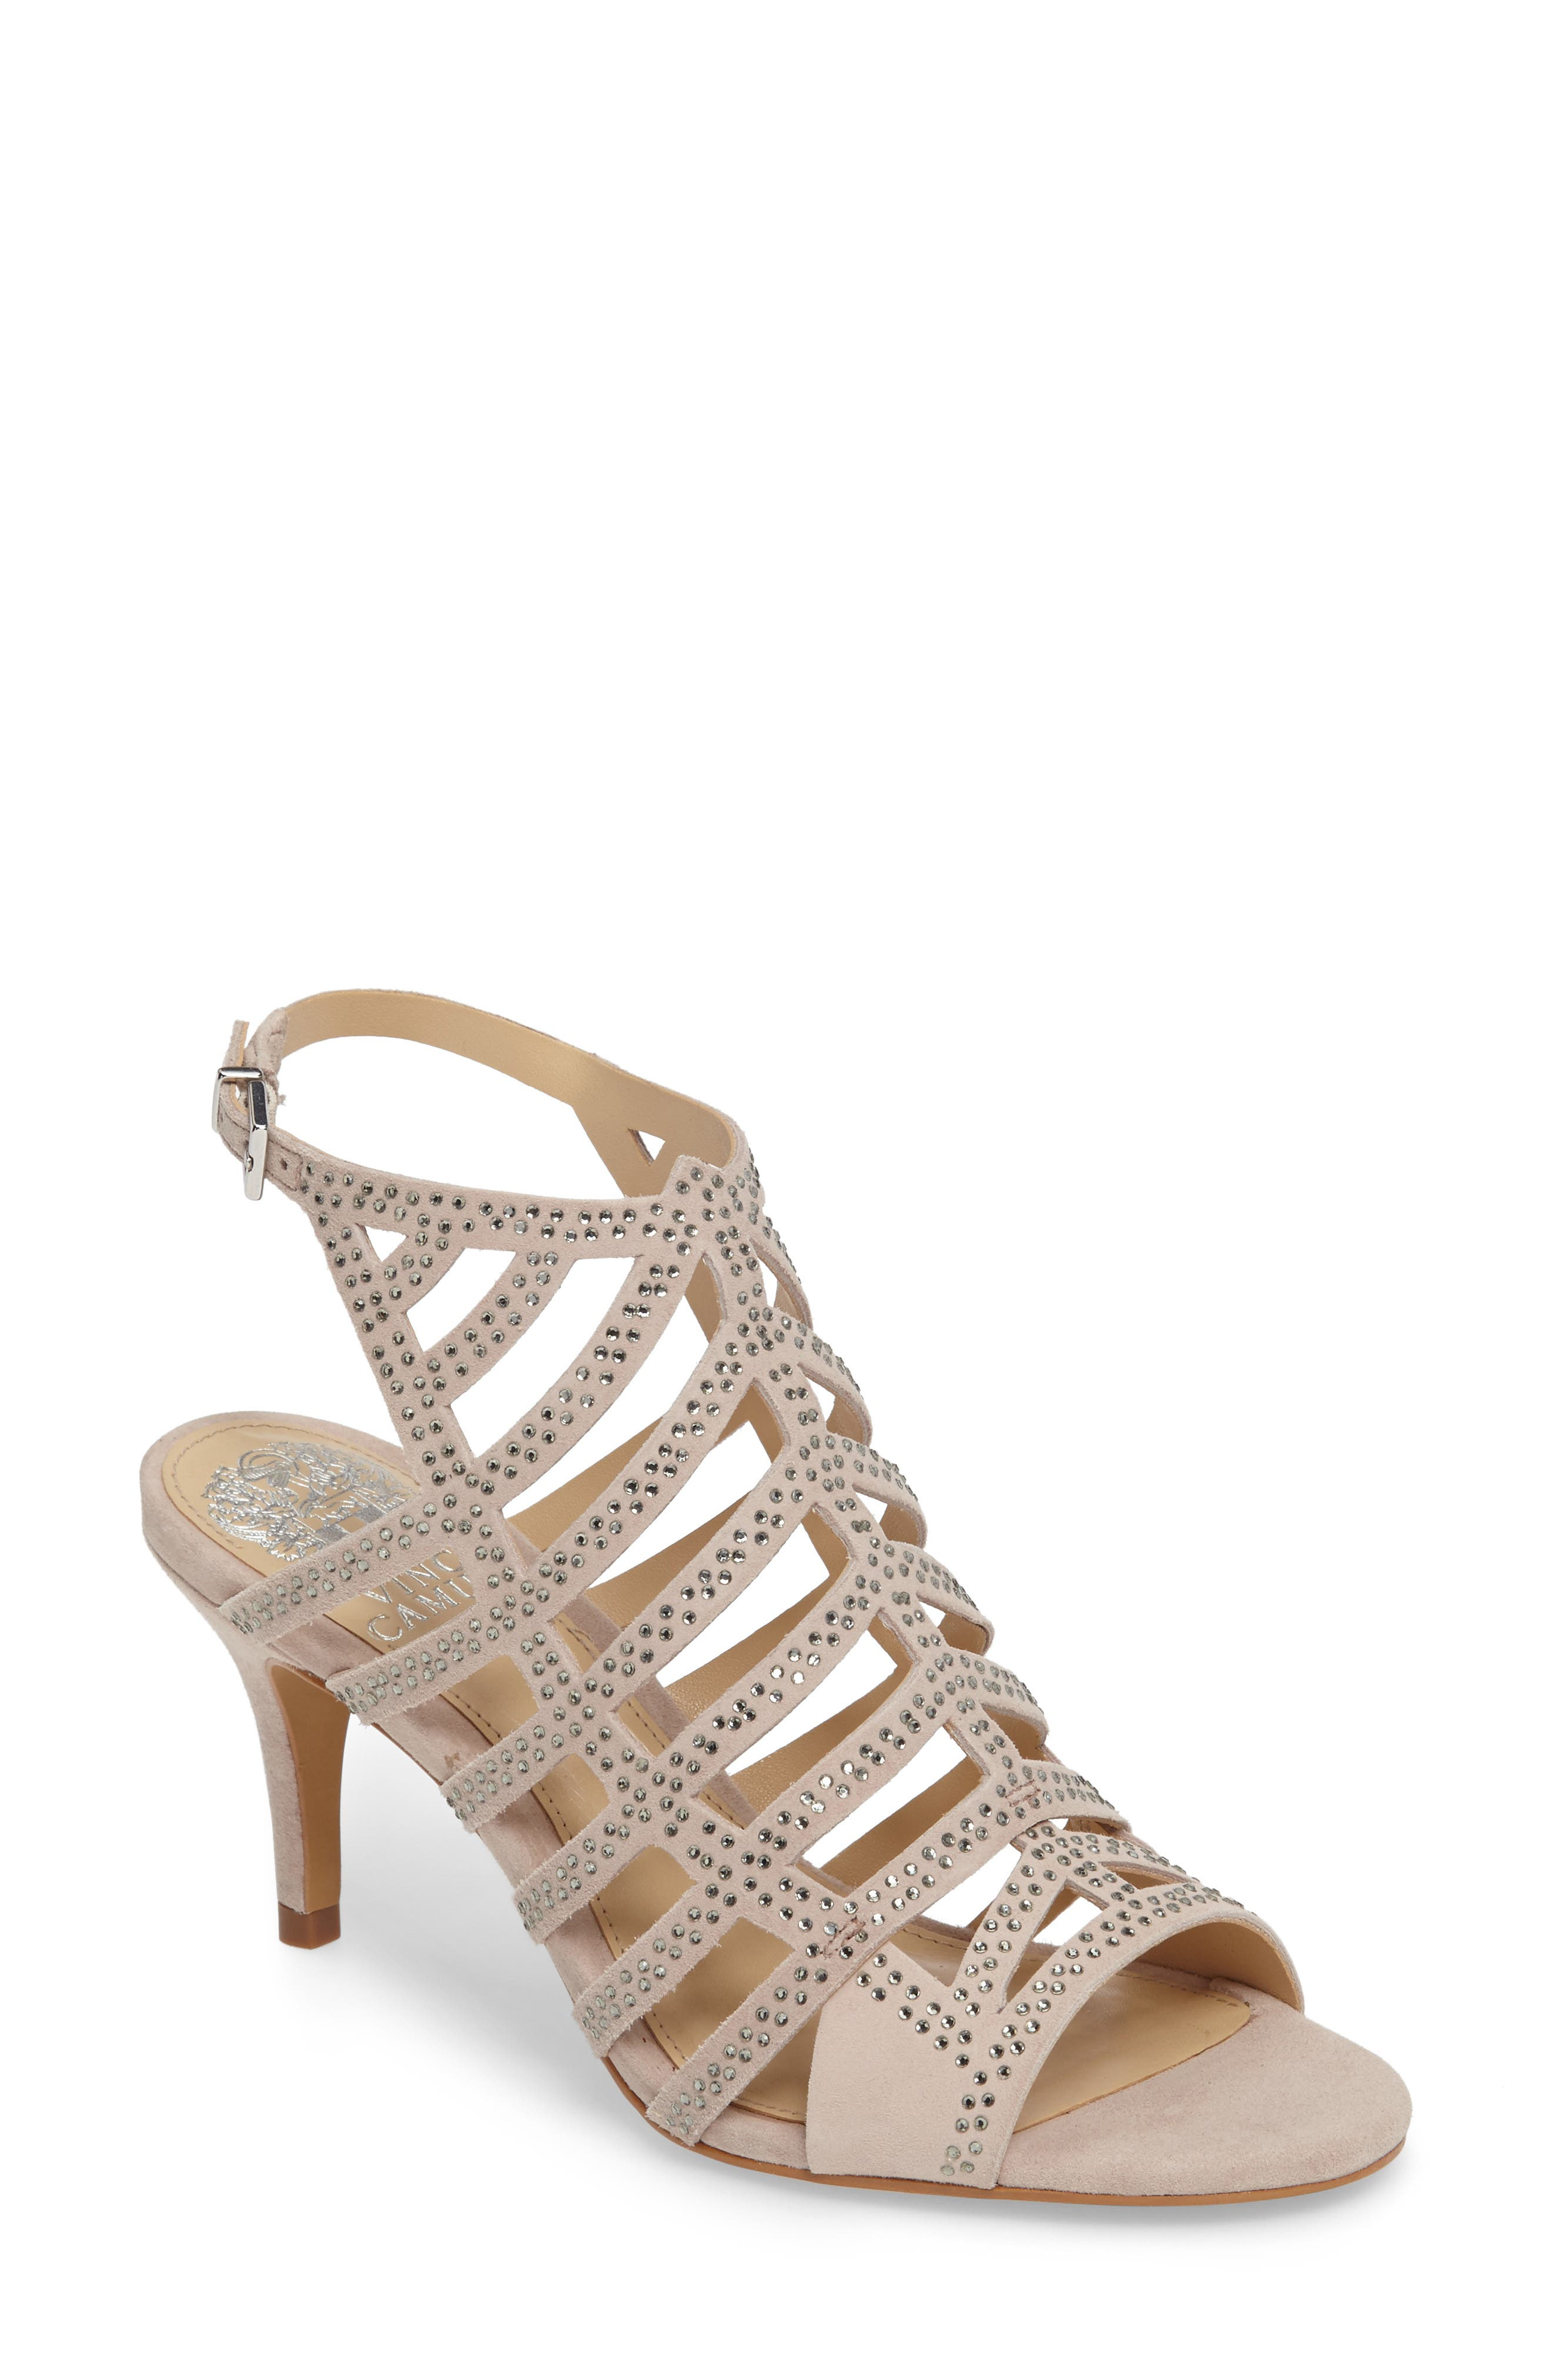 Alternate Image 1 Selected - Vince Camuto Patinka Sandal (Women)